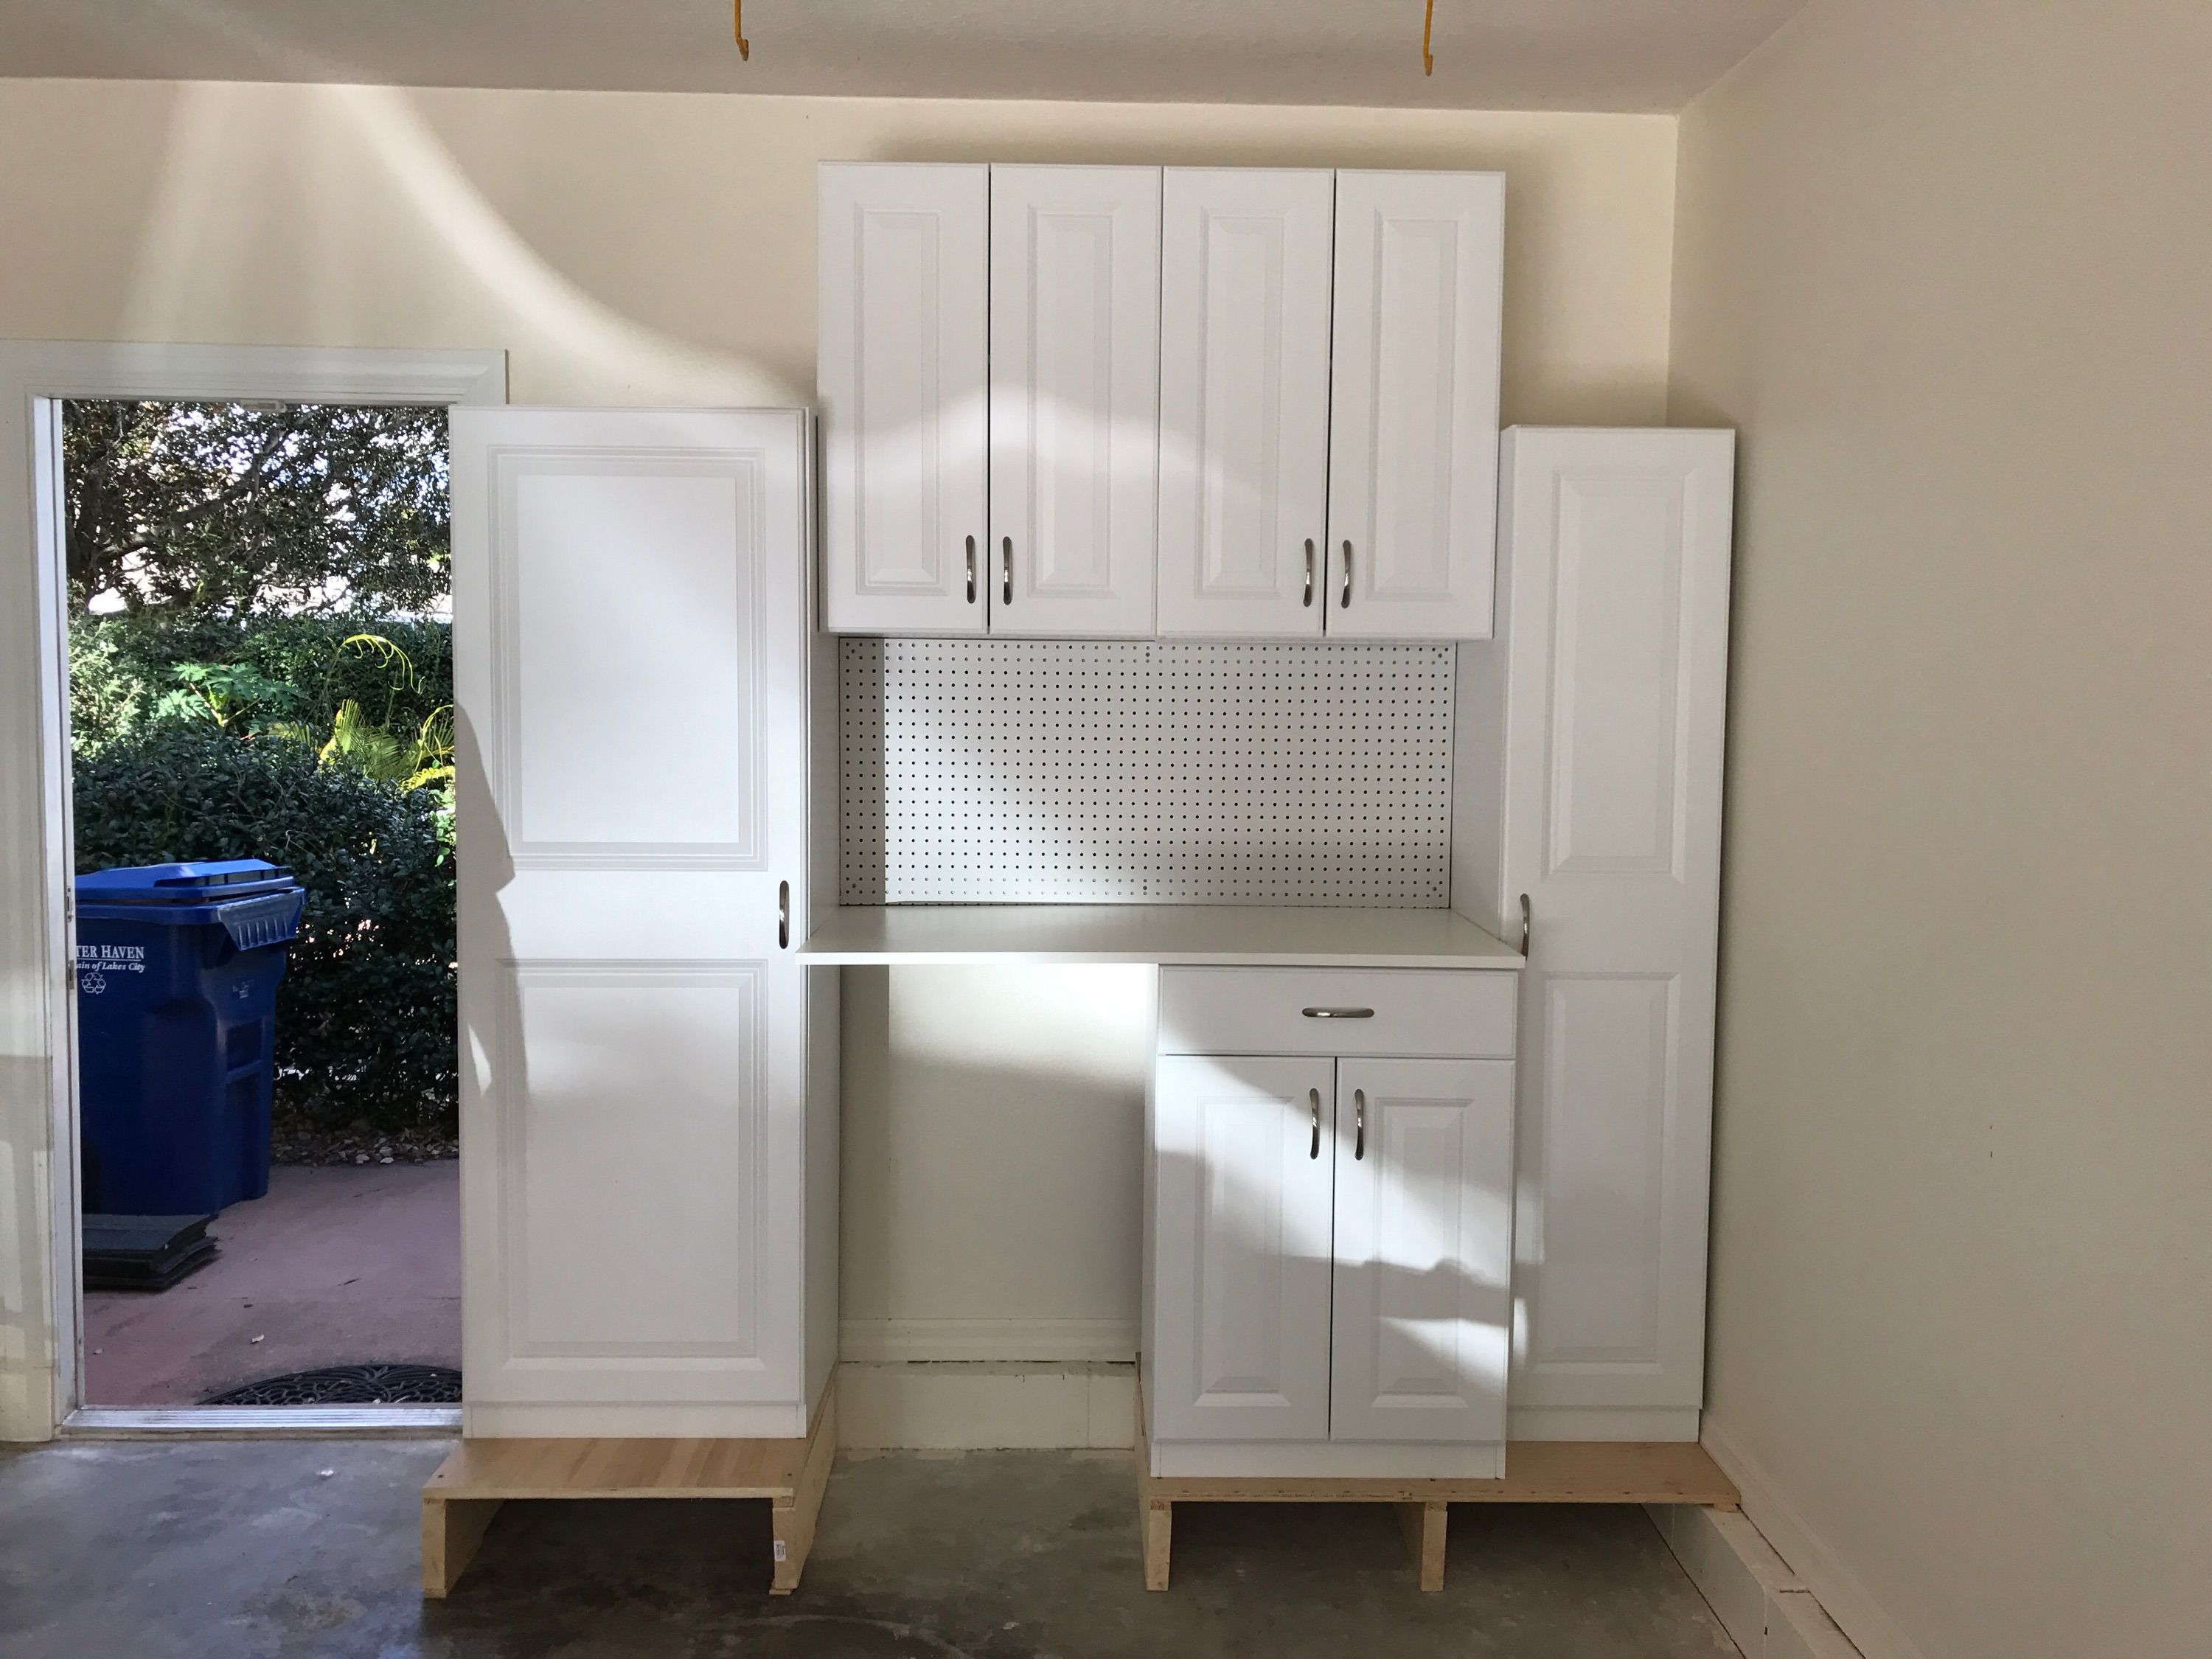 estate cabinets by rsi from lowe s nice storage cabinets on lowe s laundry room storage cabinets id=62111